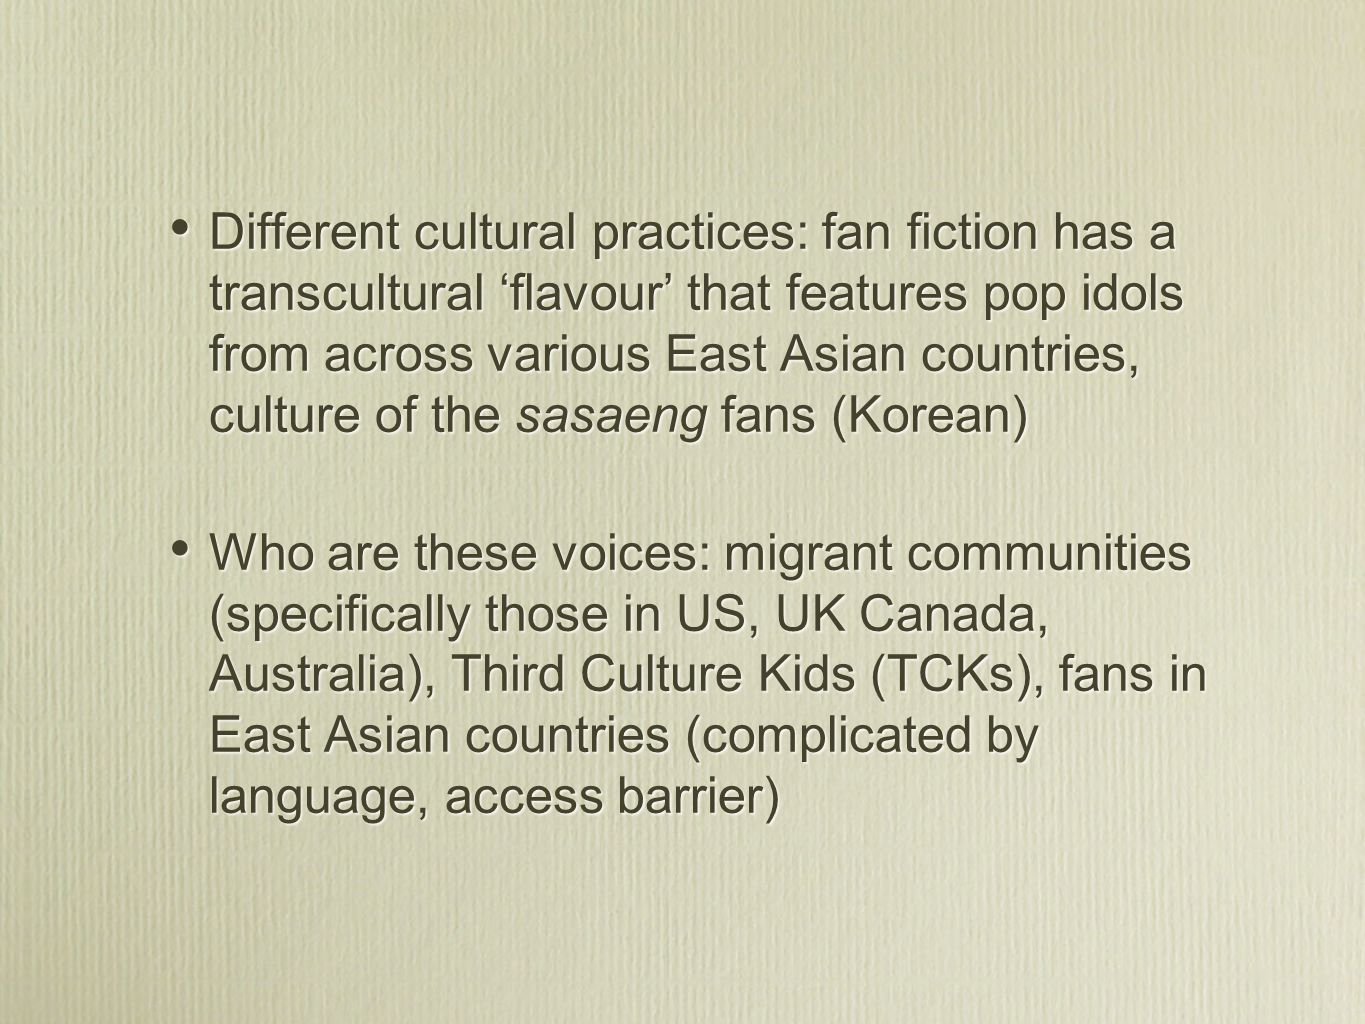 Different cultural practices: fan fiction has a transcultural flavour that features pop idols from across various East Asian countries, culture of the sasaeng fans (Korean) Who are these voices: migrant communities (specifically those in US, UK Canada, Australia), Third Culture Kids (TCKs), fans in East Asian countries (complicated by language, access barrier) Different cultural practices: fan fiction has a transcultural flavour that features pop idols from across various East Asian countries, culture of the sasaeng fans (Korean) Who are these voices: migrant communities (specifically those in US, UK Canada, Australia), Third Culture Kids (TCKs), fans in East Asian countries (complicated by language, access barrier)